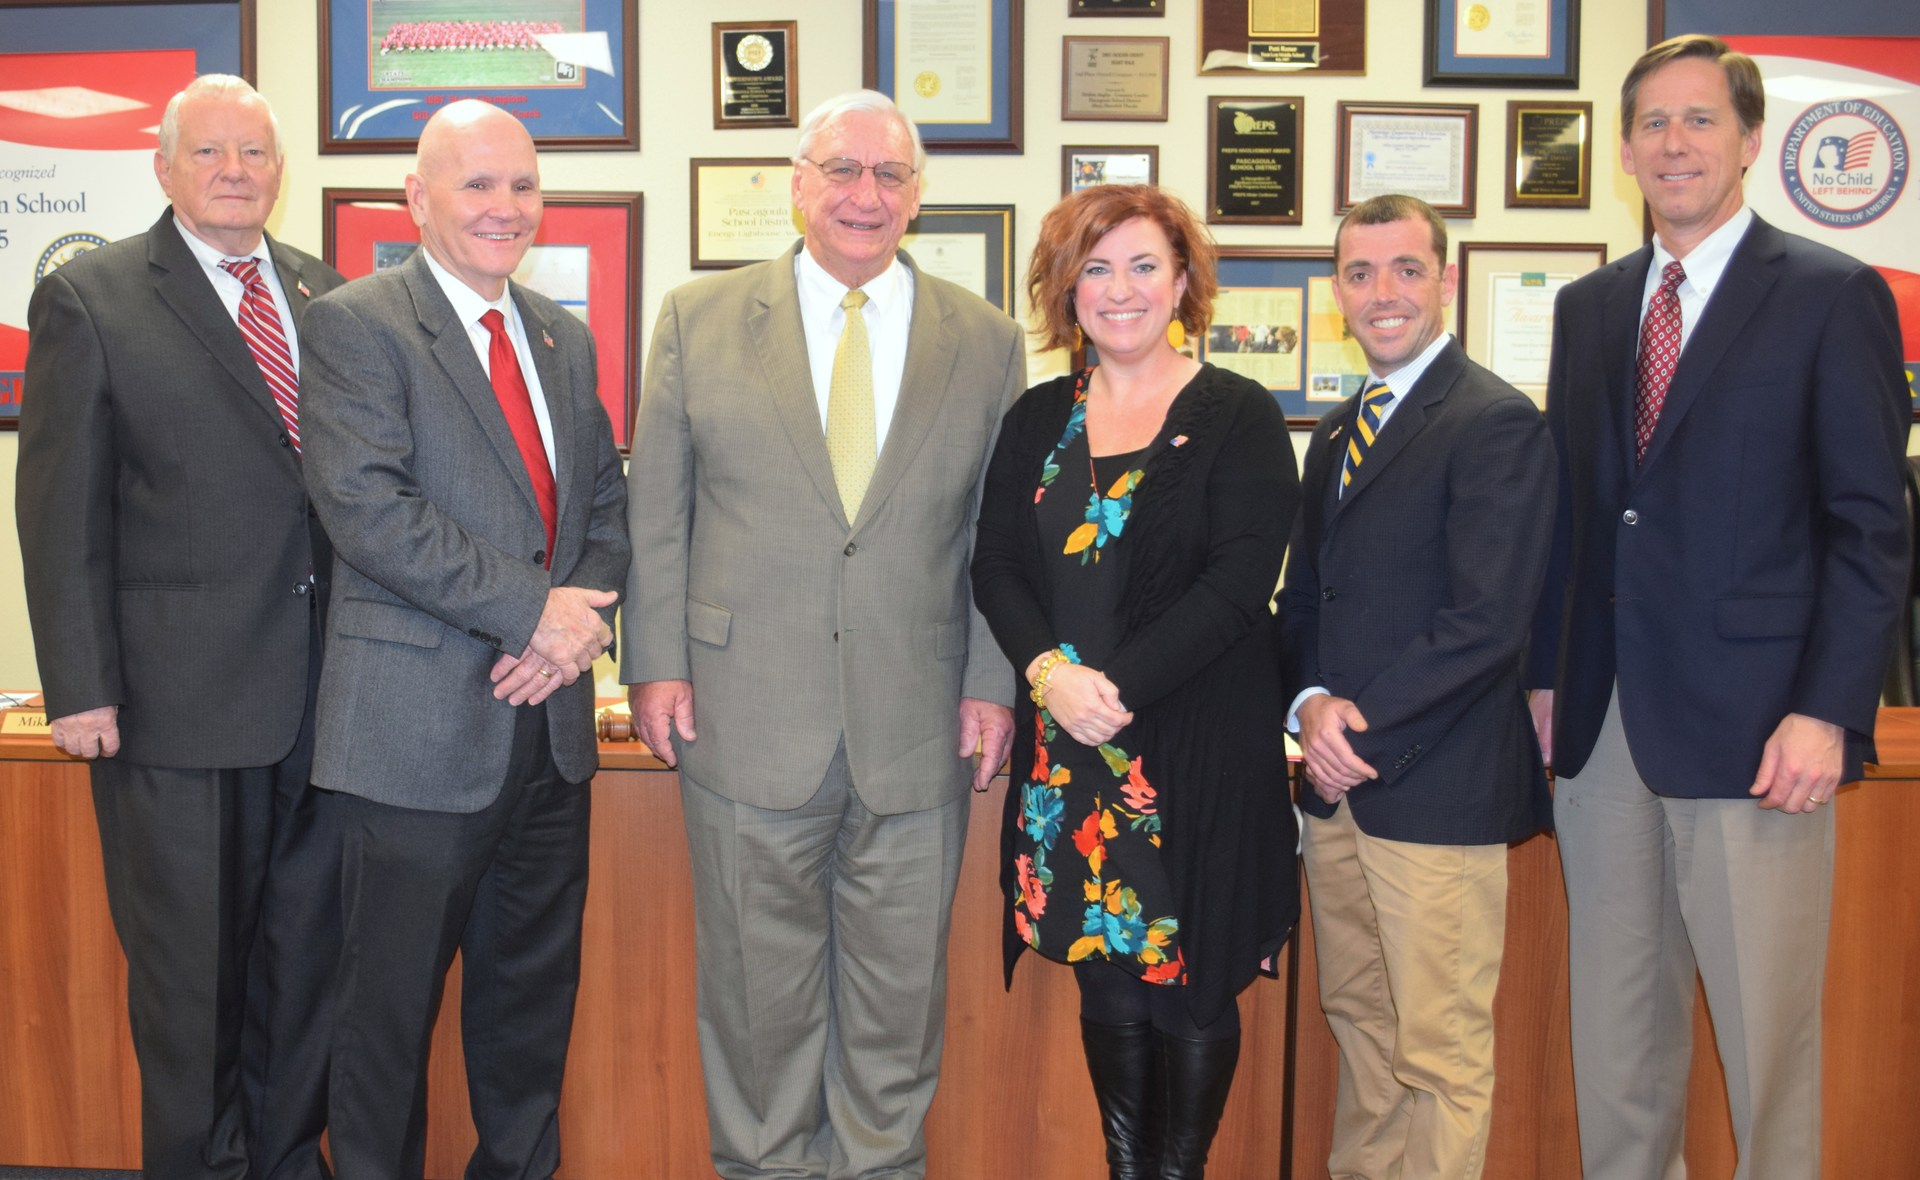 Mike Concannon, Sonny Backs, Dan Marks, Tracy Jackson-Wilson and Matthew Johnson and Kelly Sessoms, board attorney.